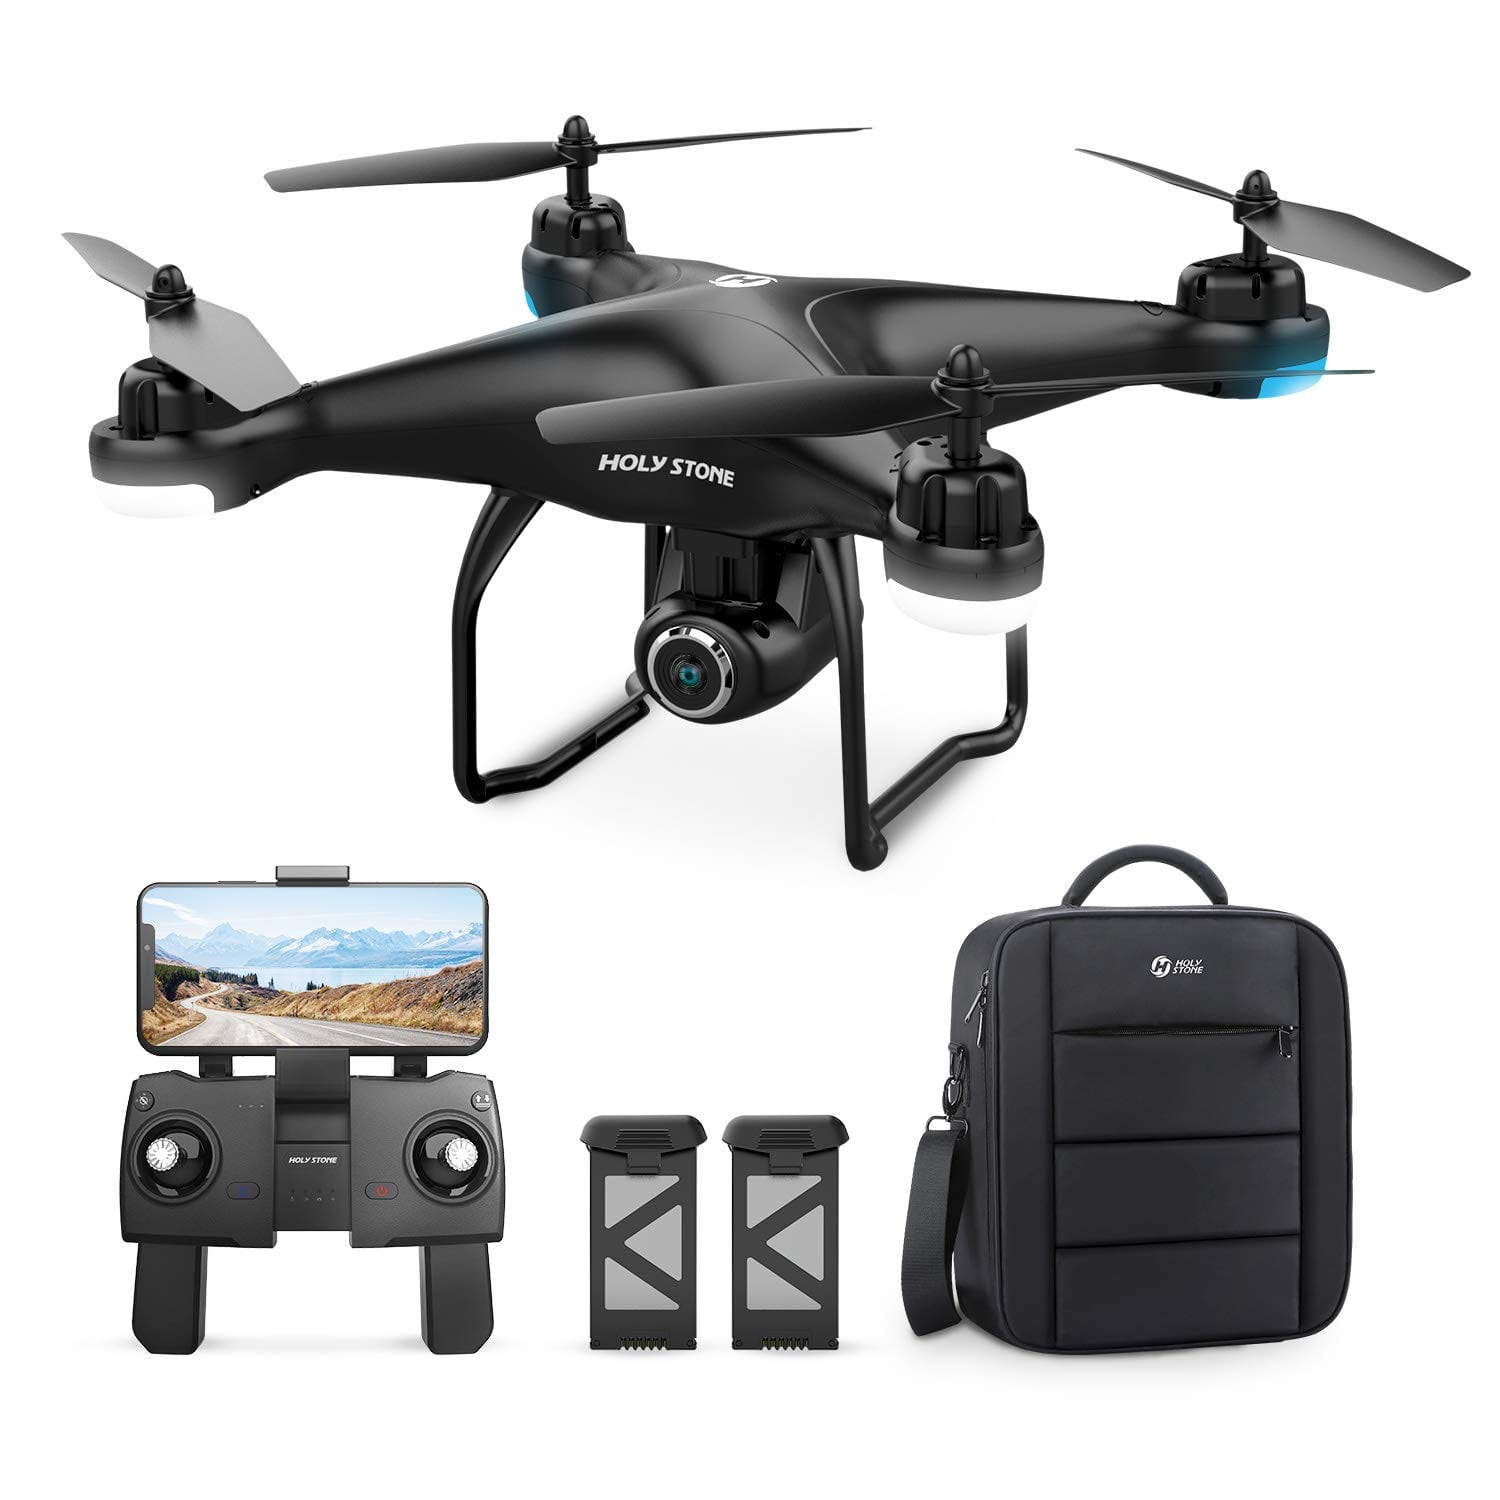 Holy Stone HS120D GPS Drone with Camera 1080p HD FPV, Includes 2 Batteries and Carrying Backpack $149.99